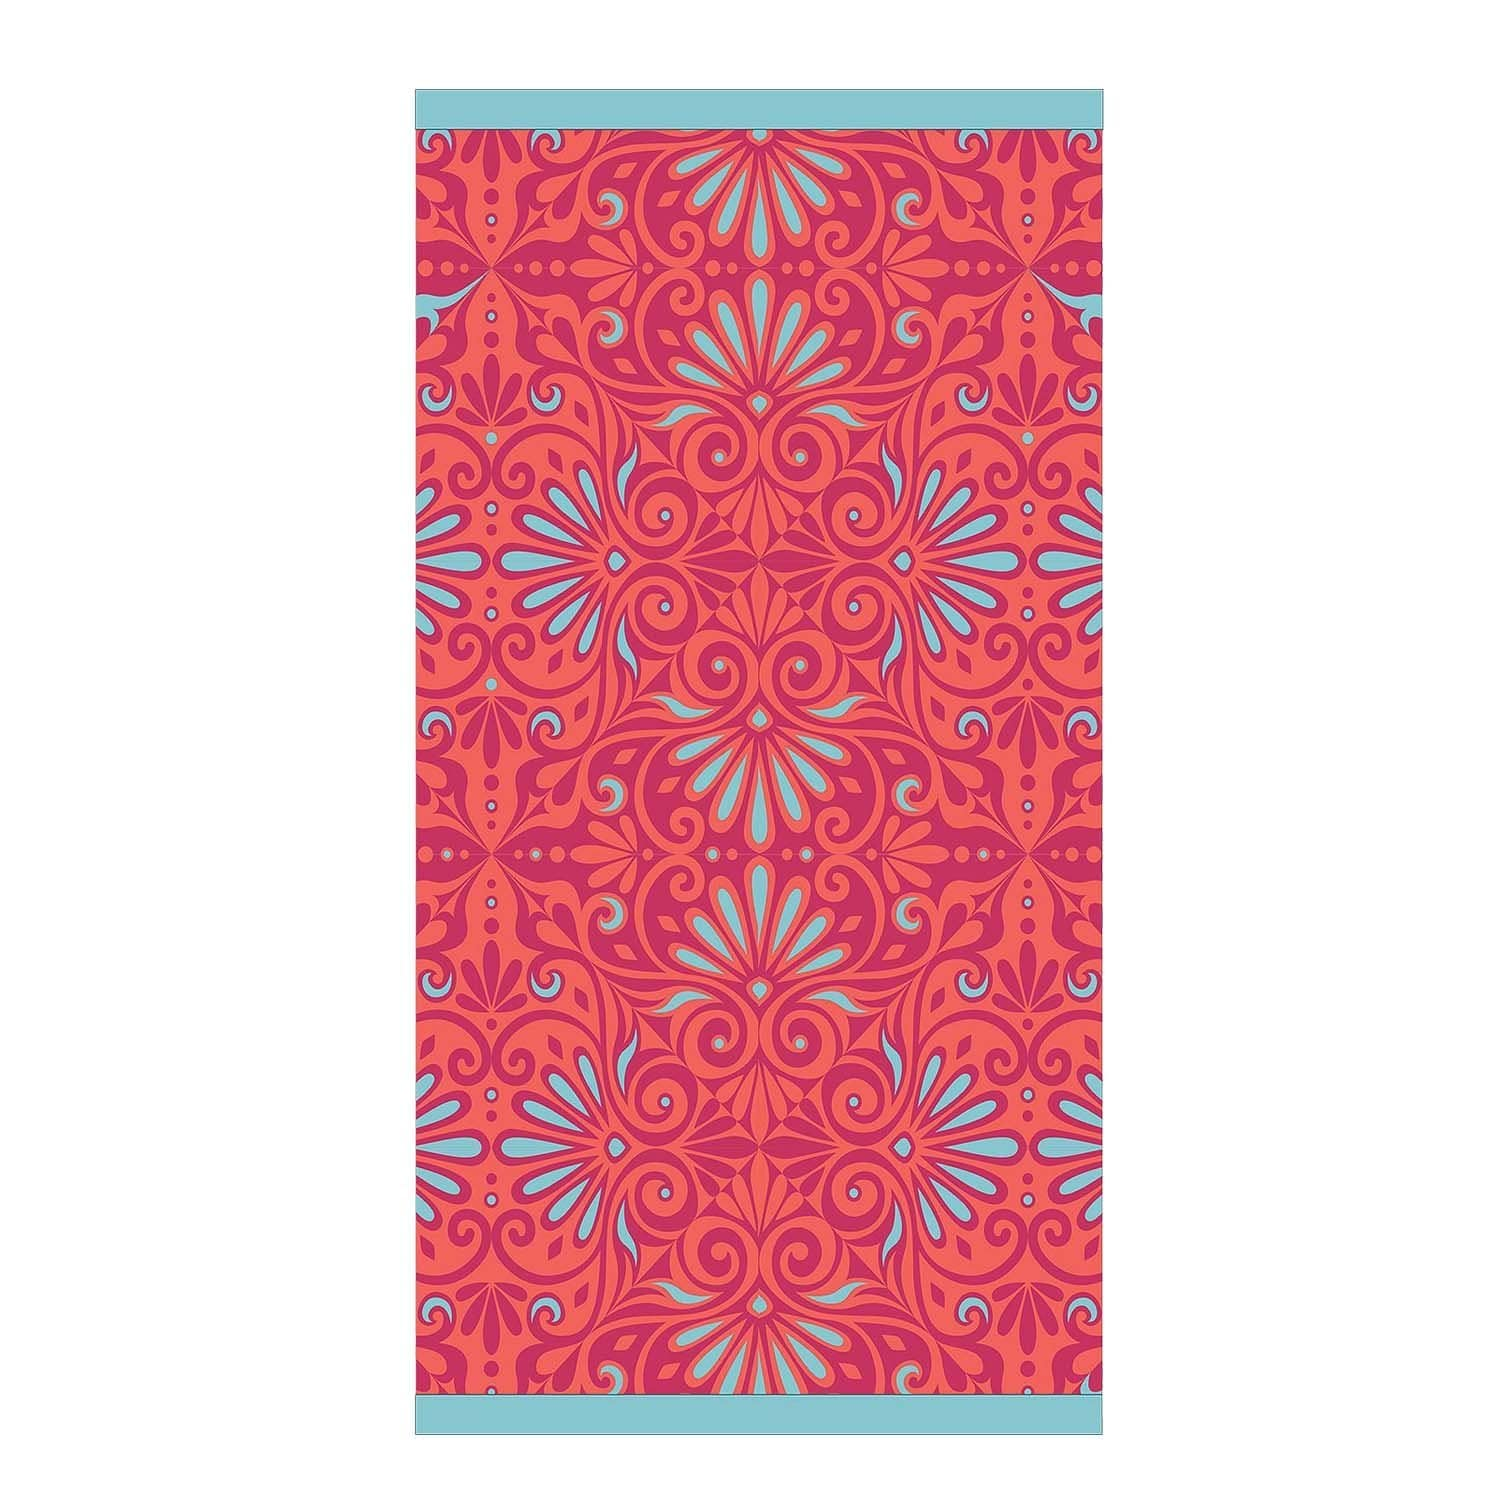 Monogram XLarge Beach Towels